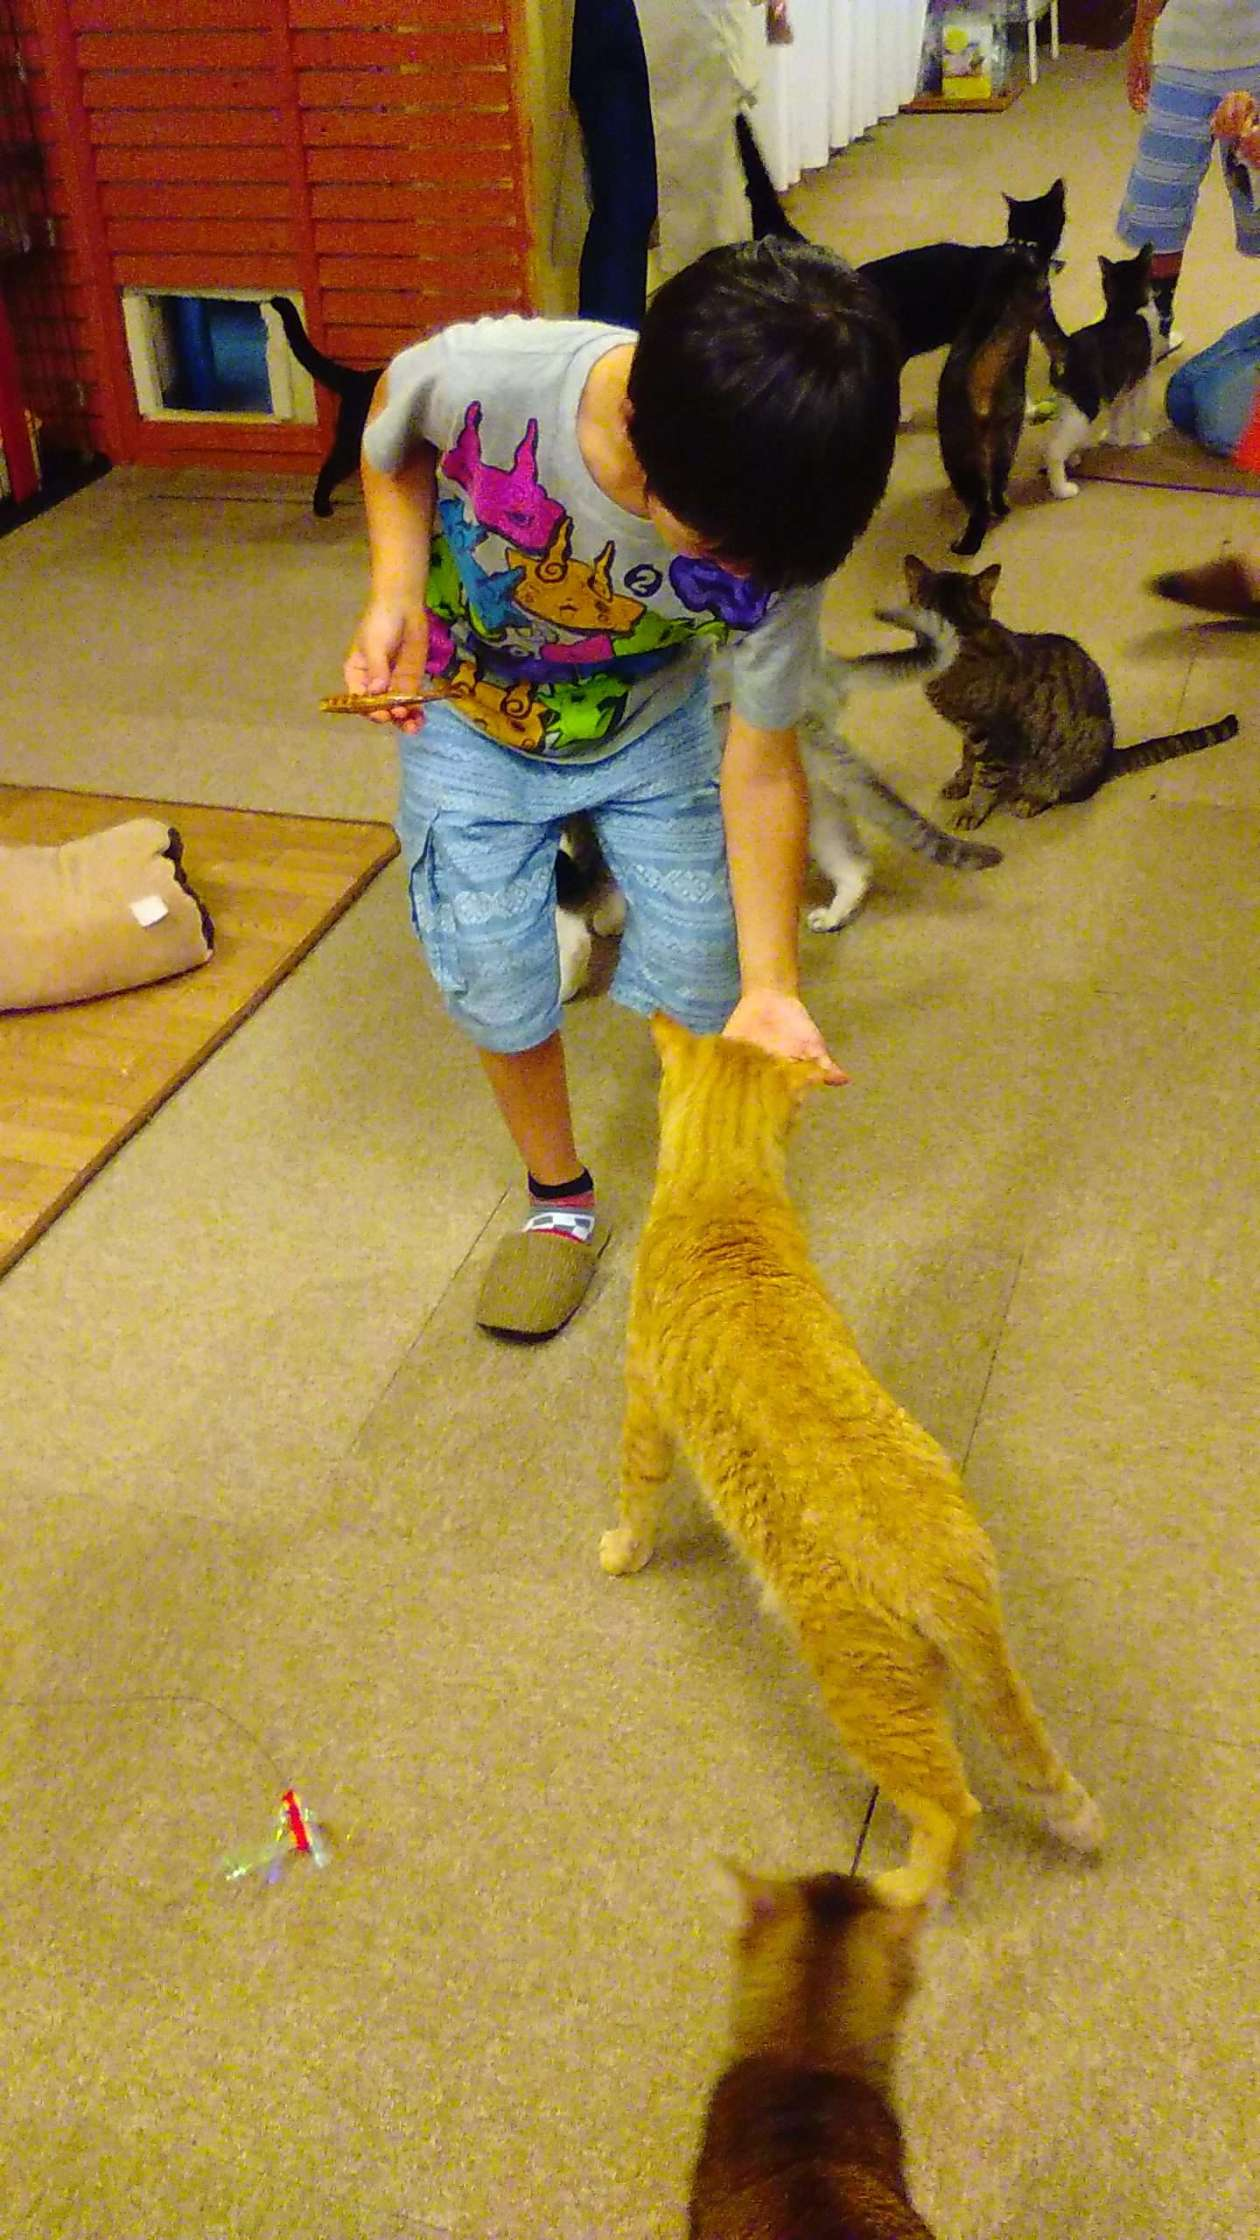 Feeding a cat treat at snack time at a cat cafe